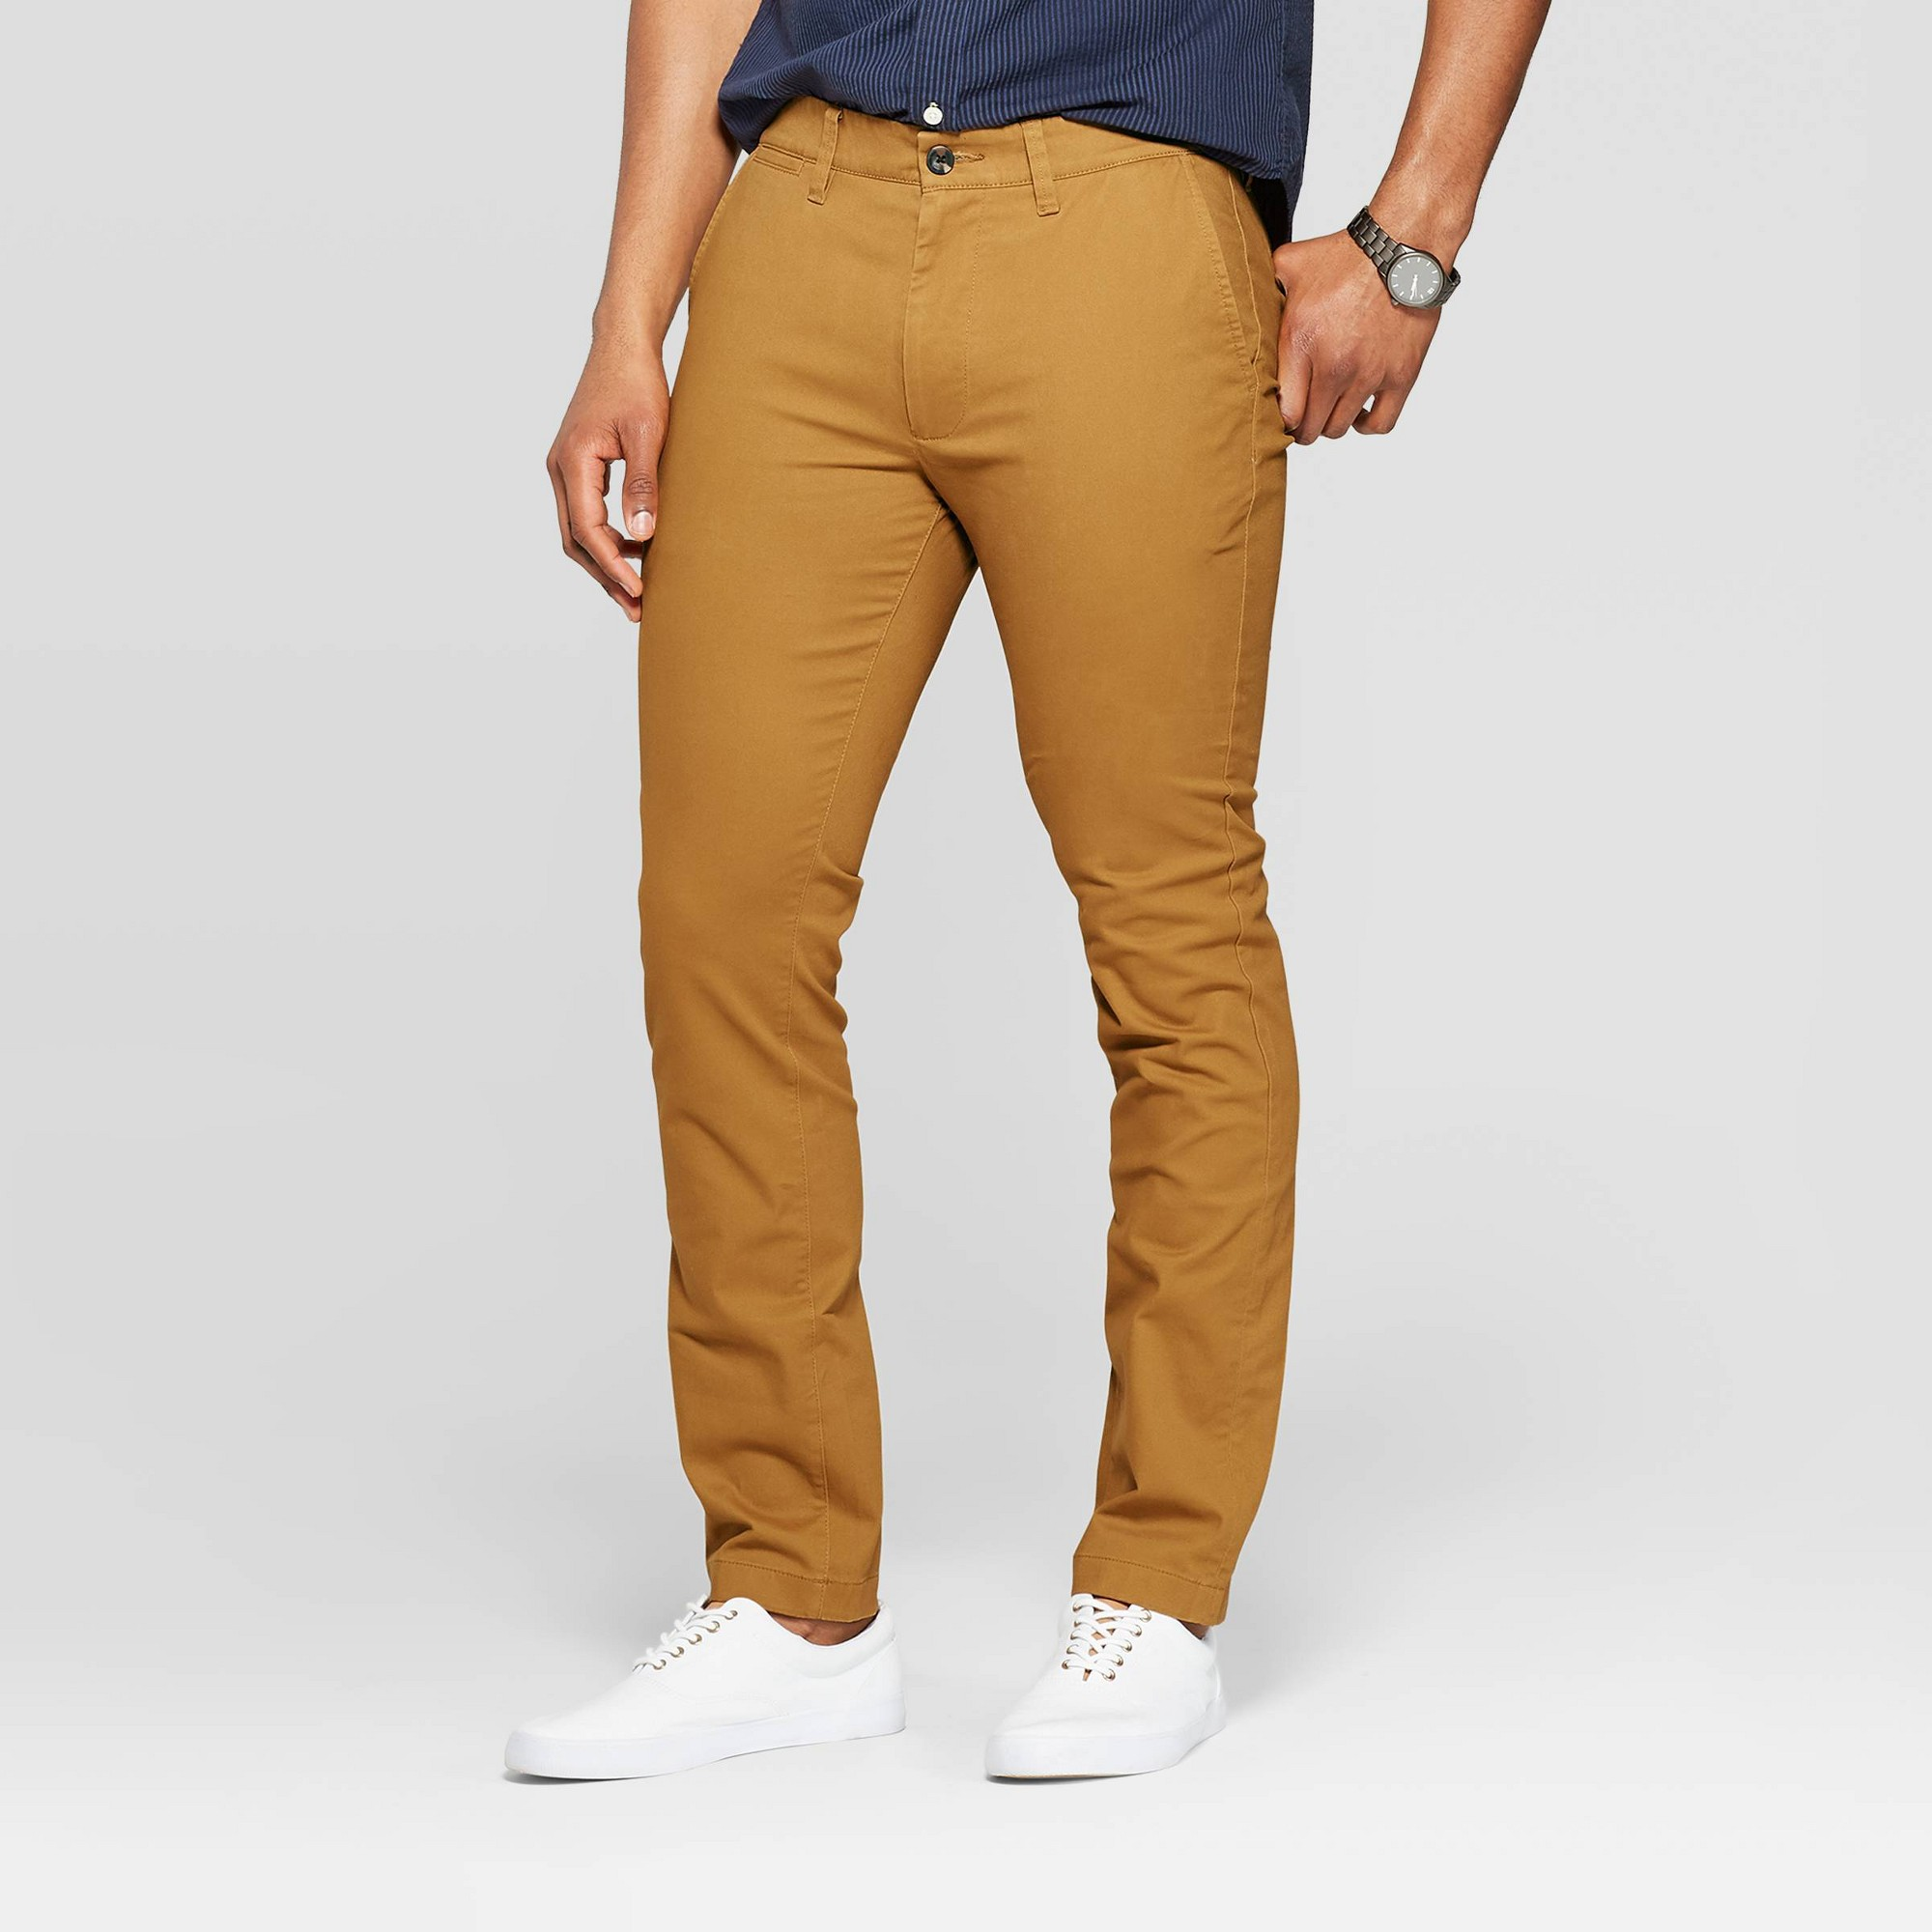 Men's Chino Pants - Goodfellow & Co Brown Decaf 32x30